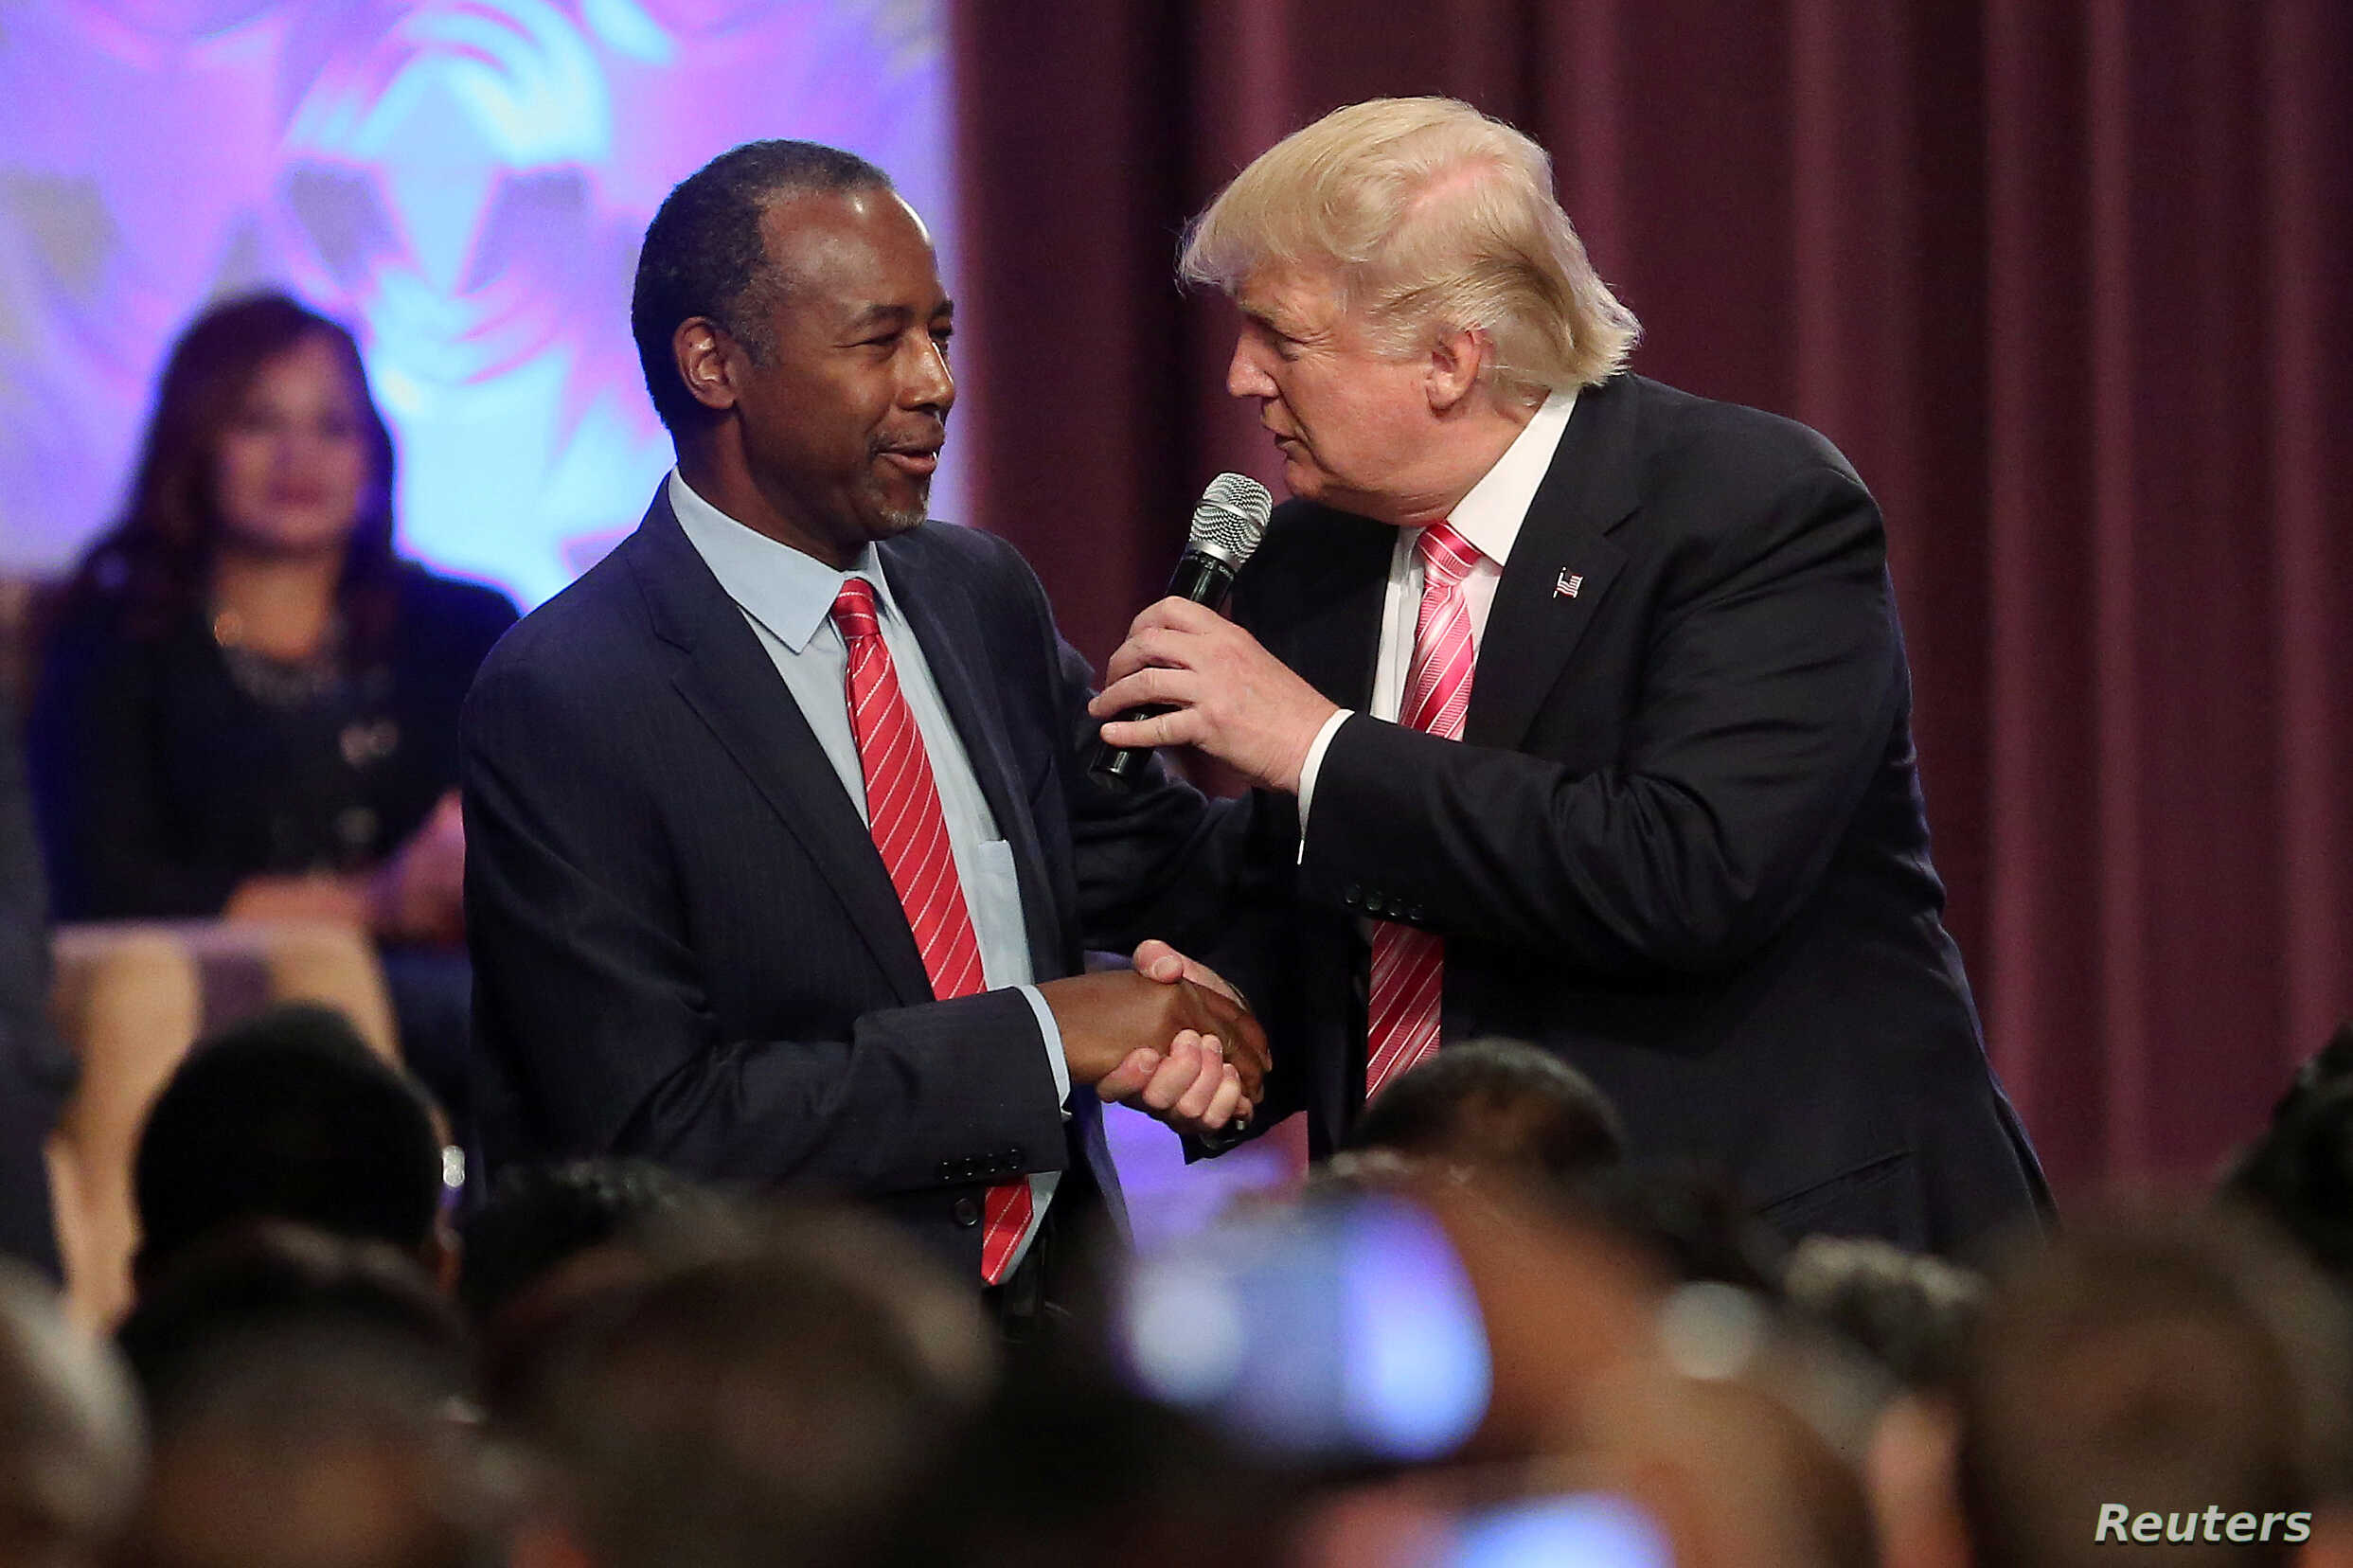 File - Donald Trump shakes hands with Ben Carson as he attends a church service in Detroit, Michigan, U.S., Sept. 3, 2016.